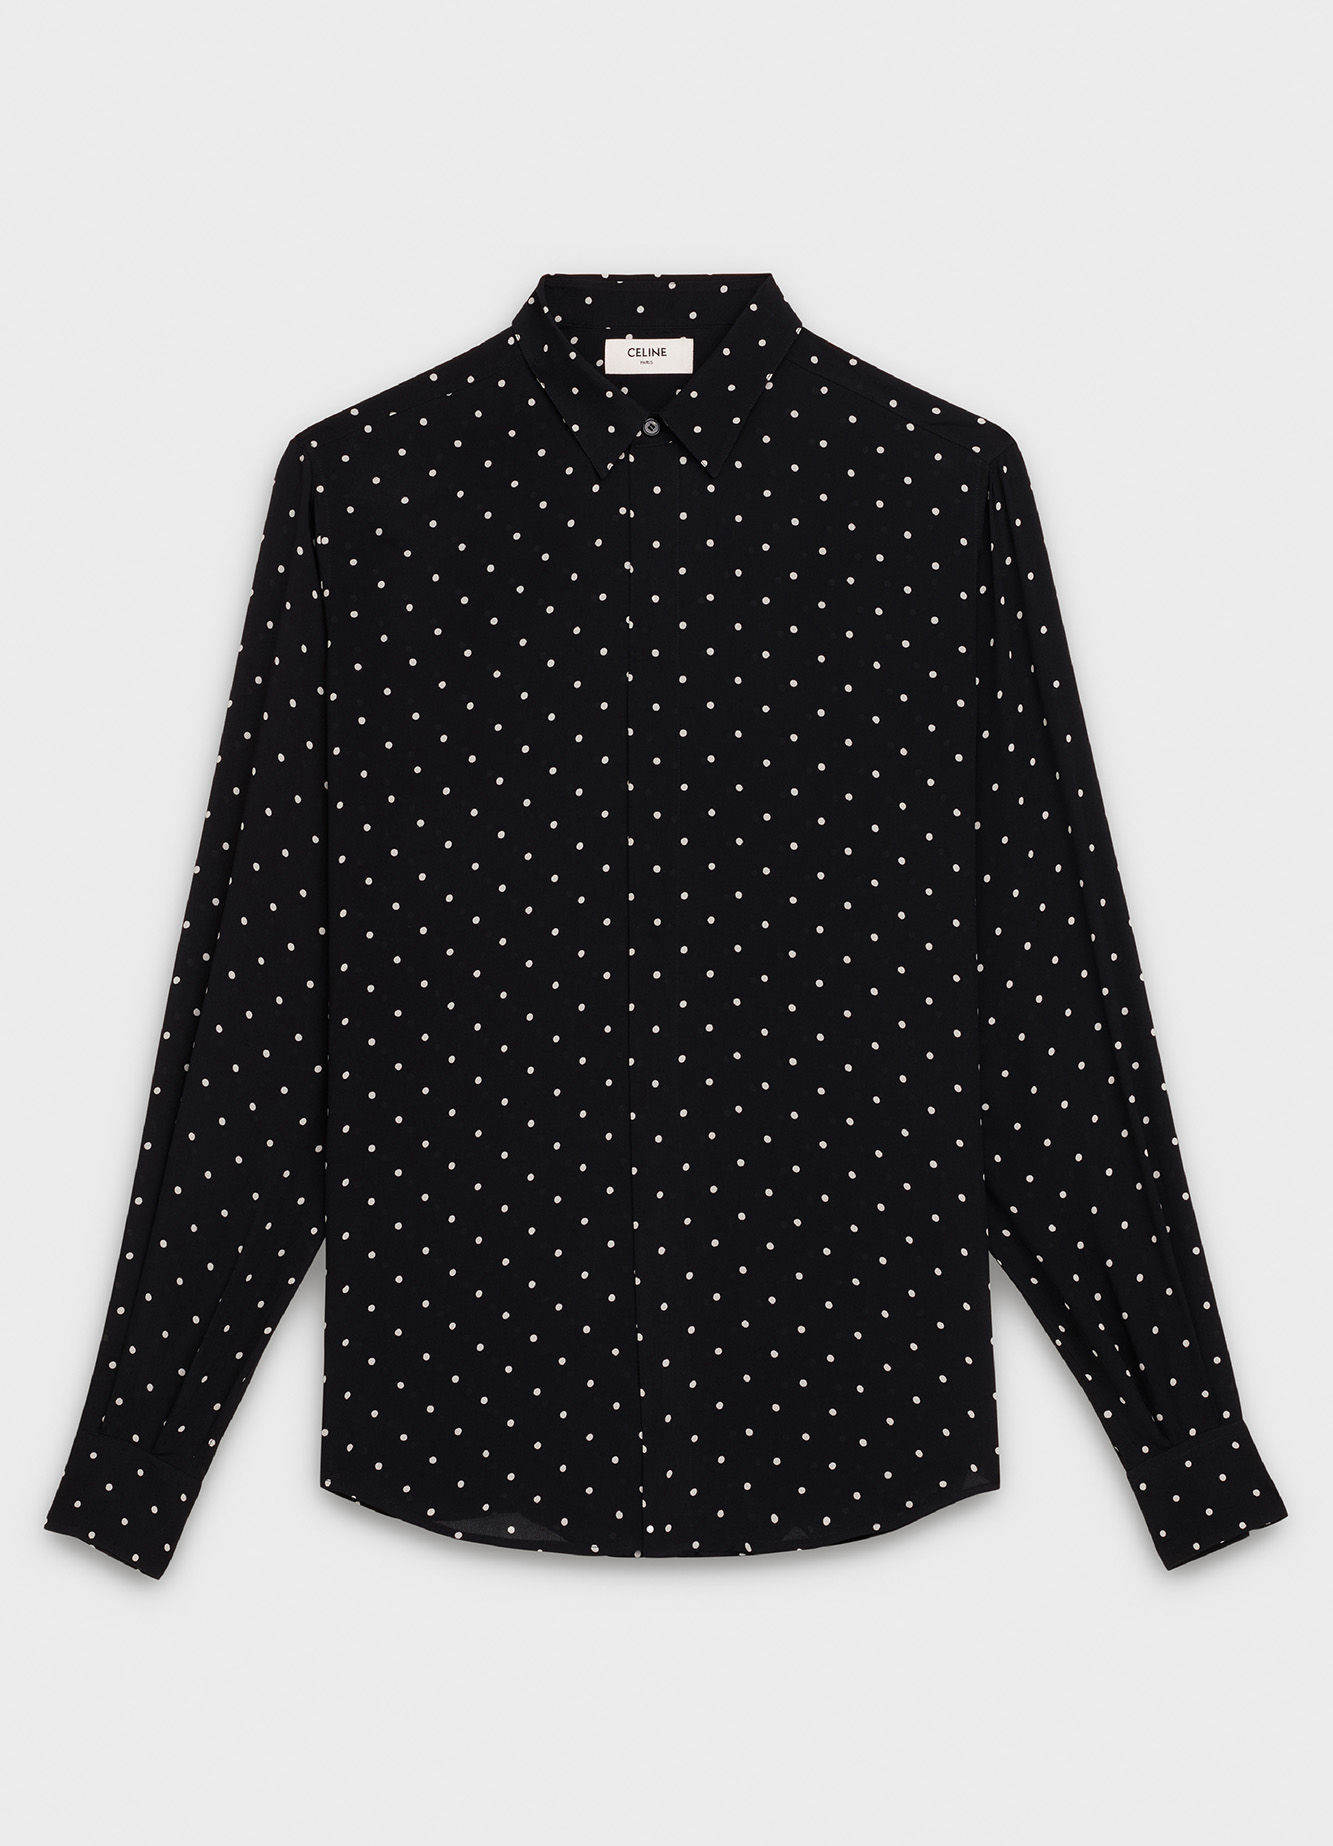 CELINE CLASSIC SHIRT IN DOT PRINTED GEORGETTE WITH MODERN COLLAR